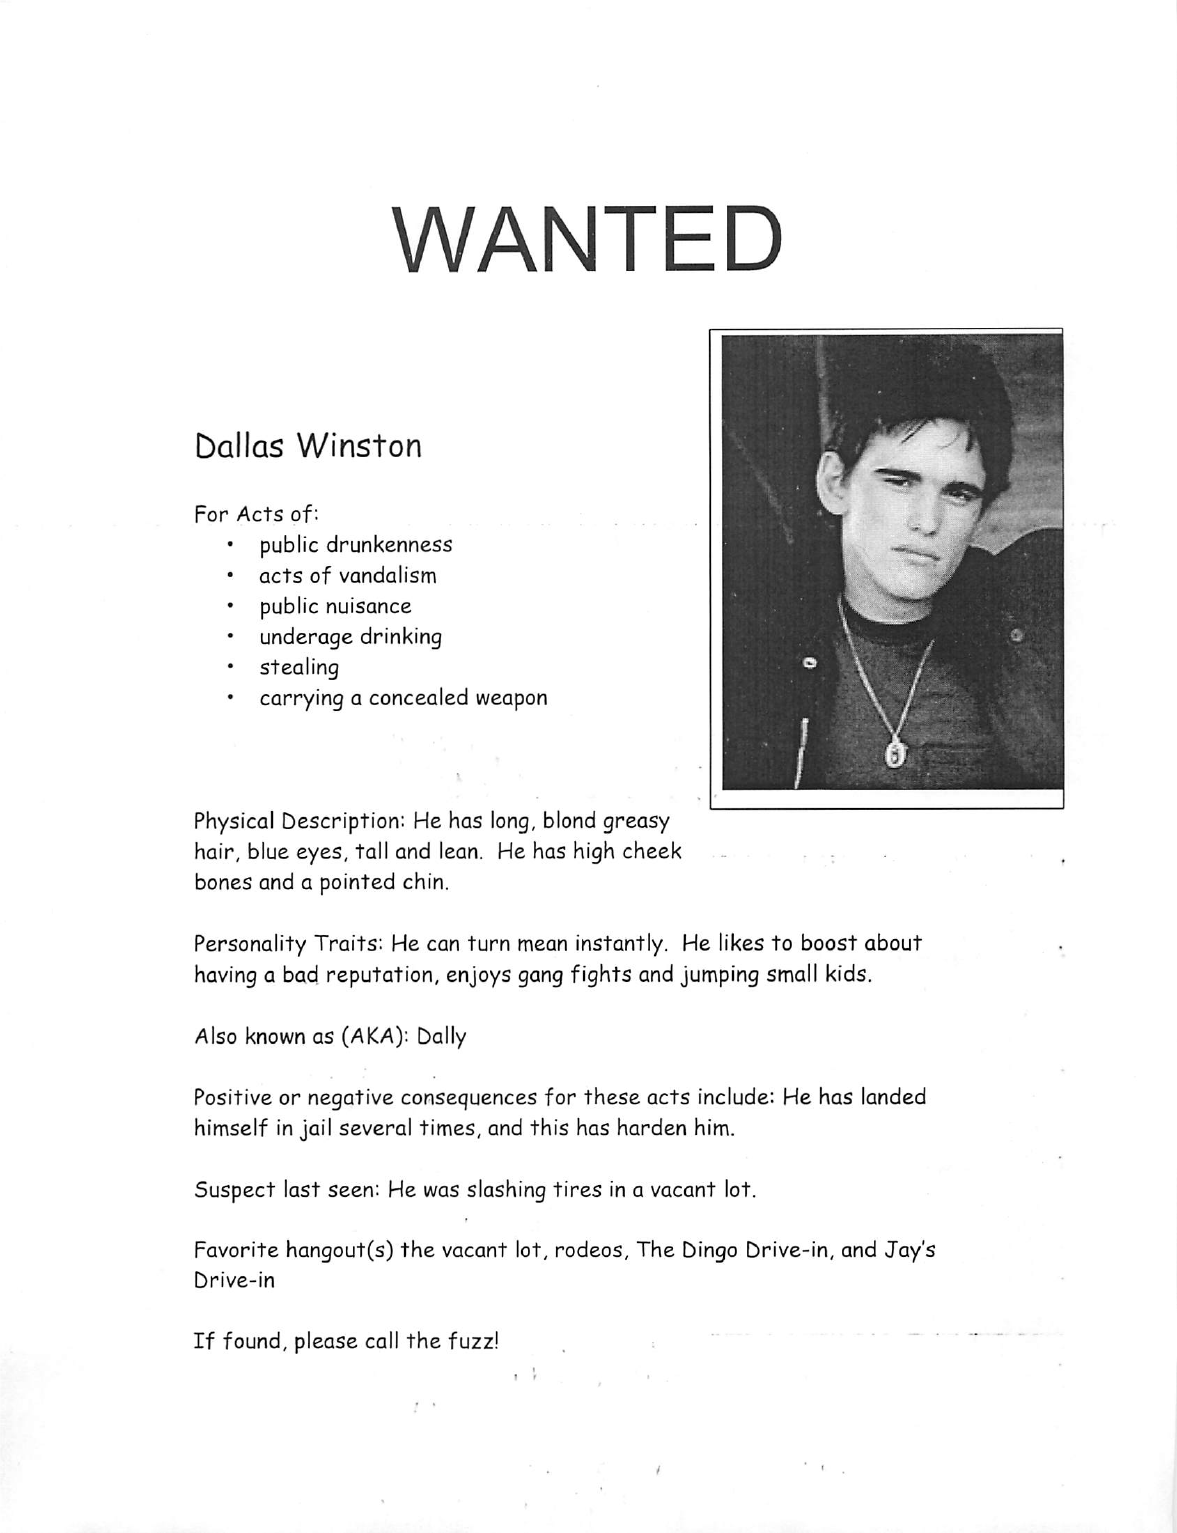 Wanted Poster Sample Free Download